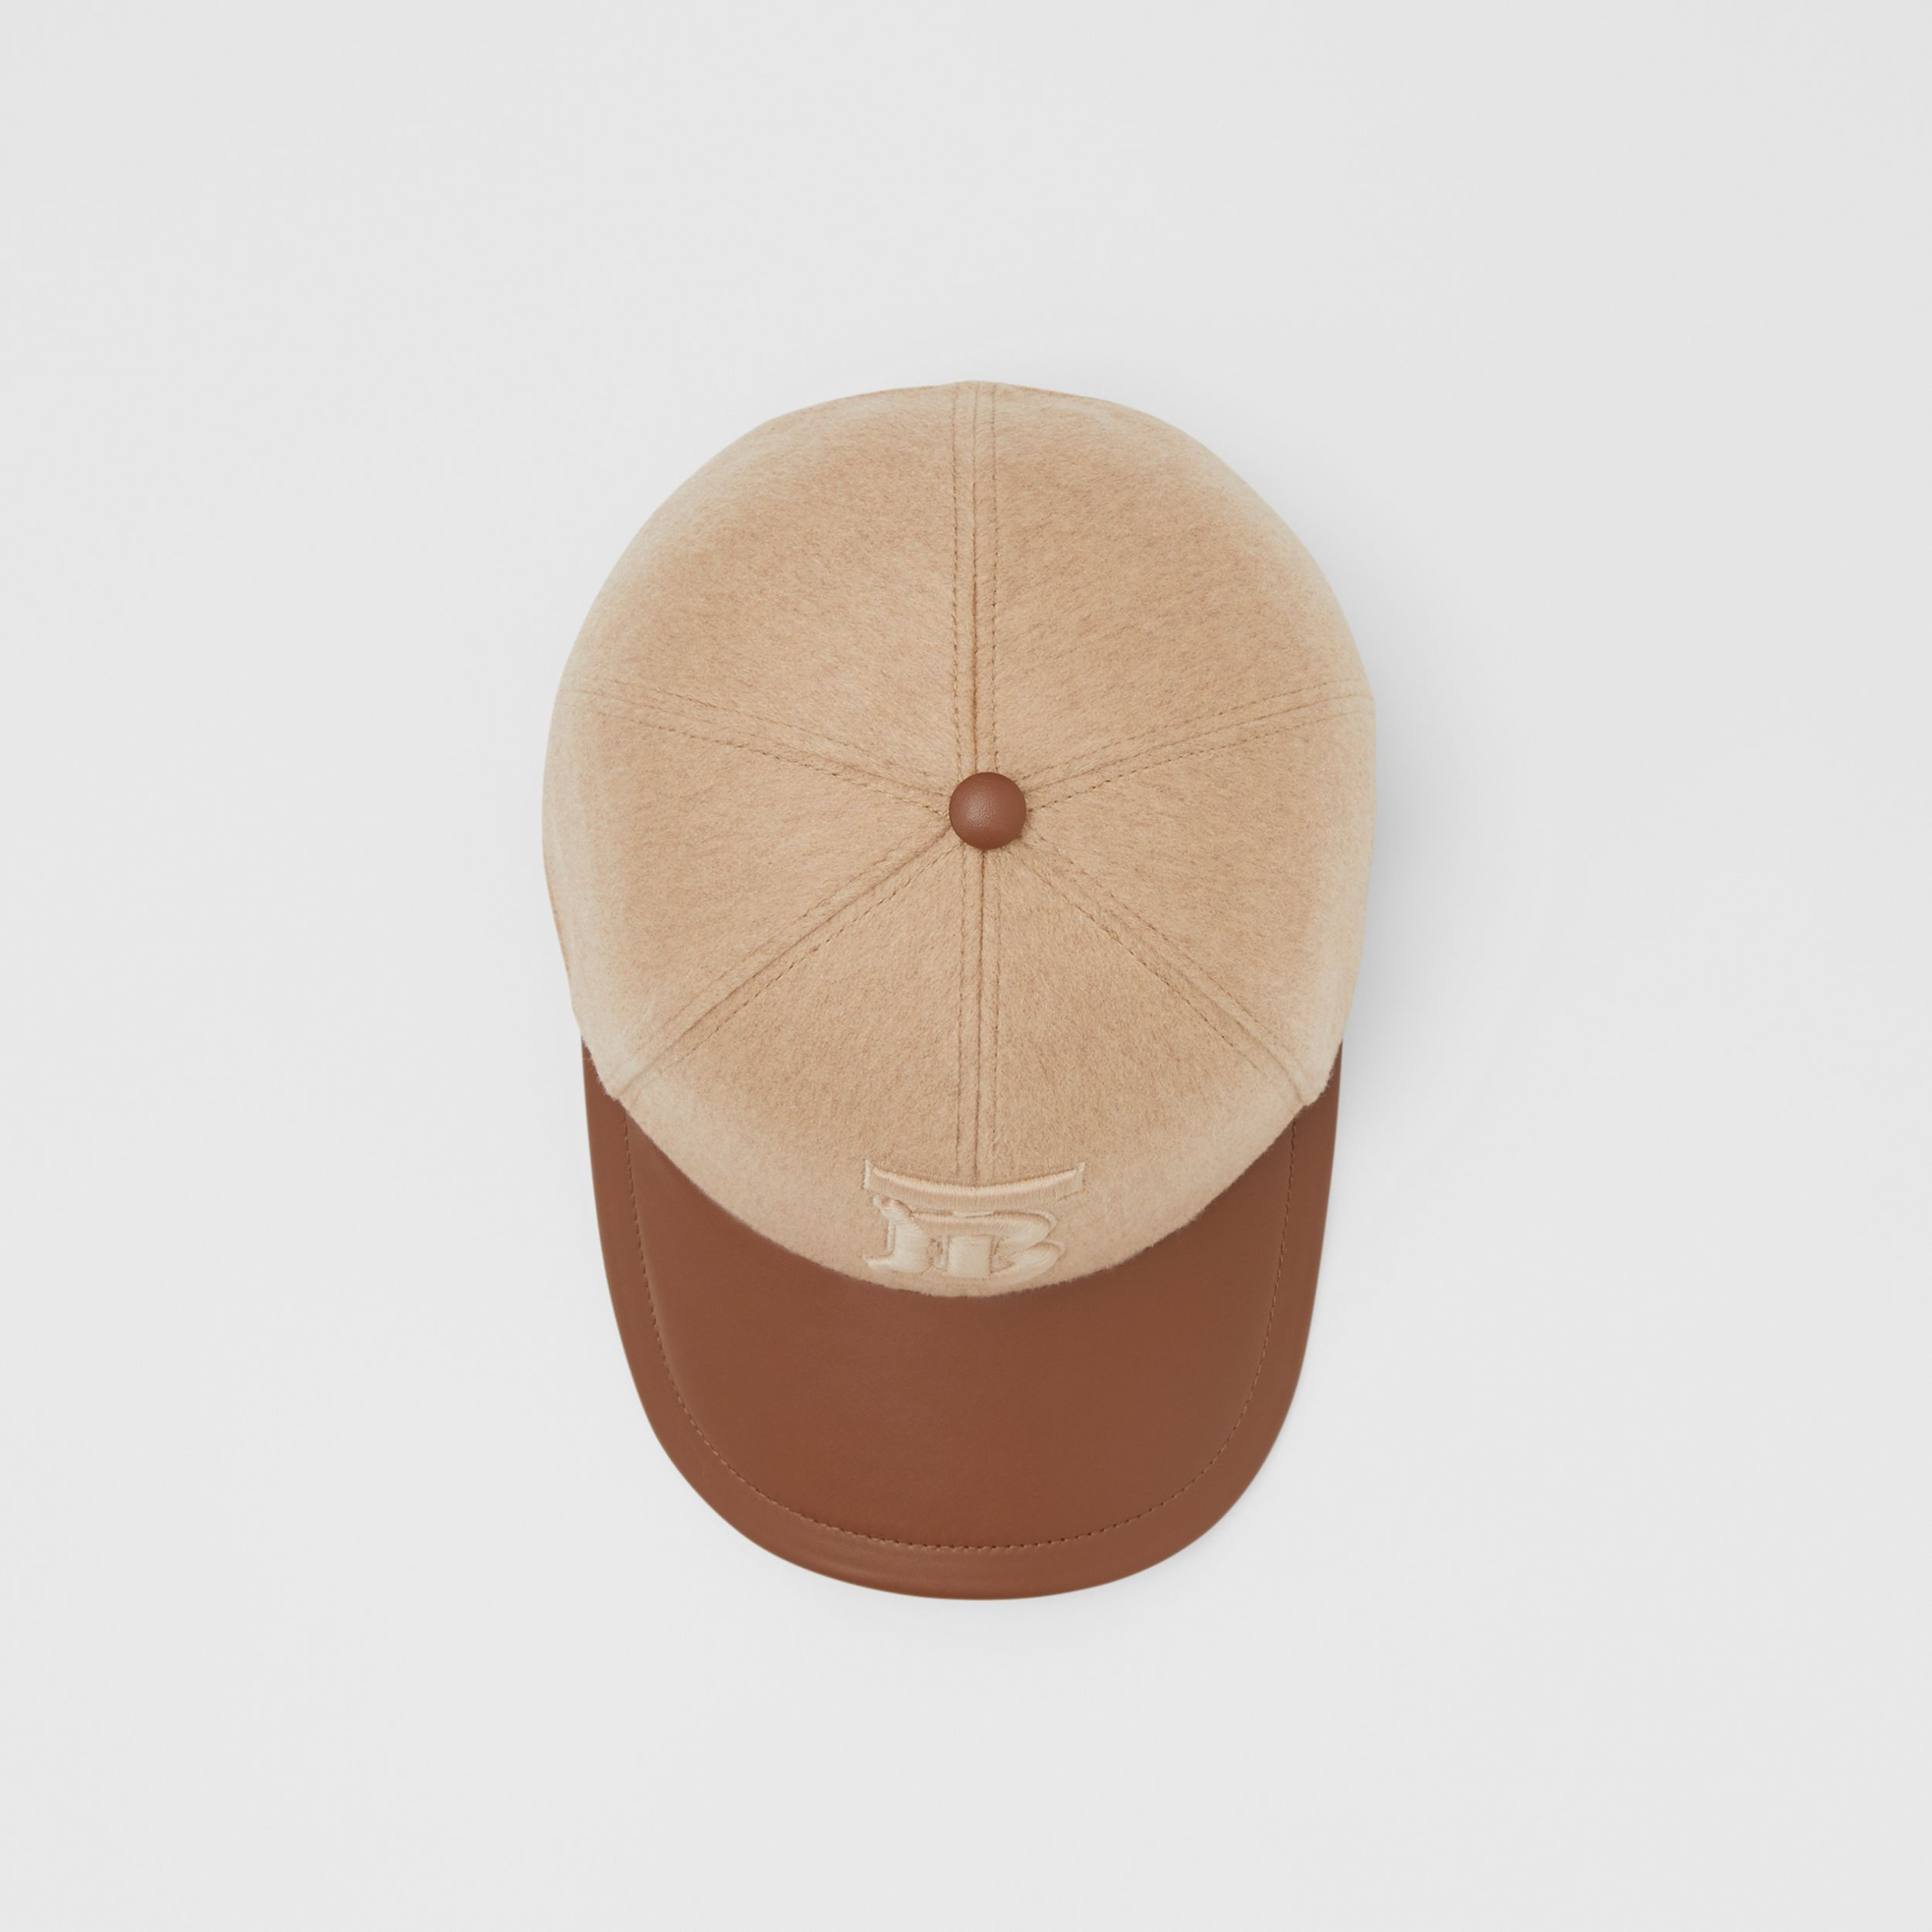 Monogram Motif Cashmere and Leather Baseball Cap in Camel | Burberry Canada - 1